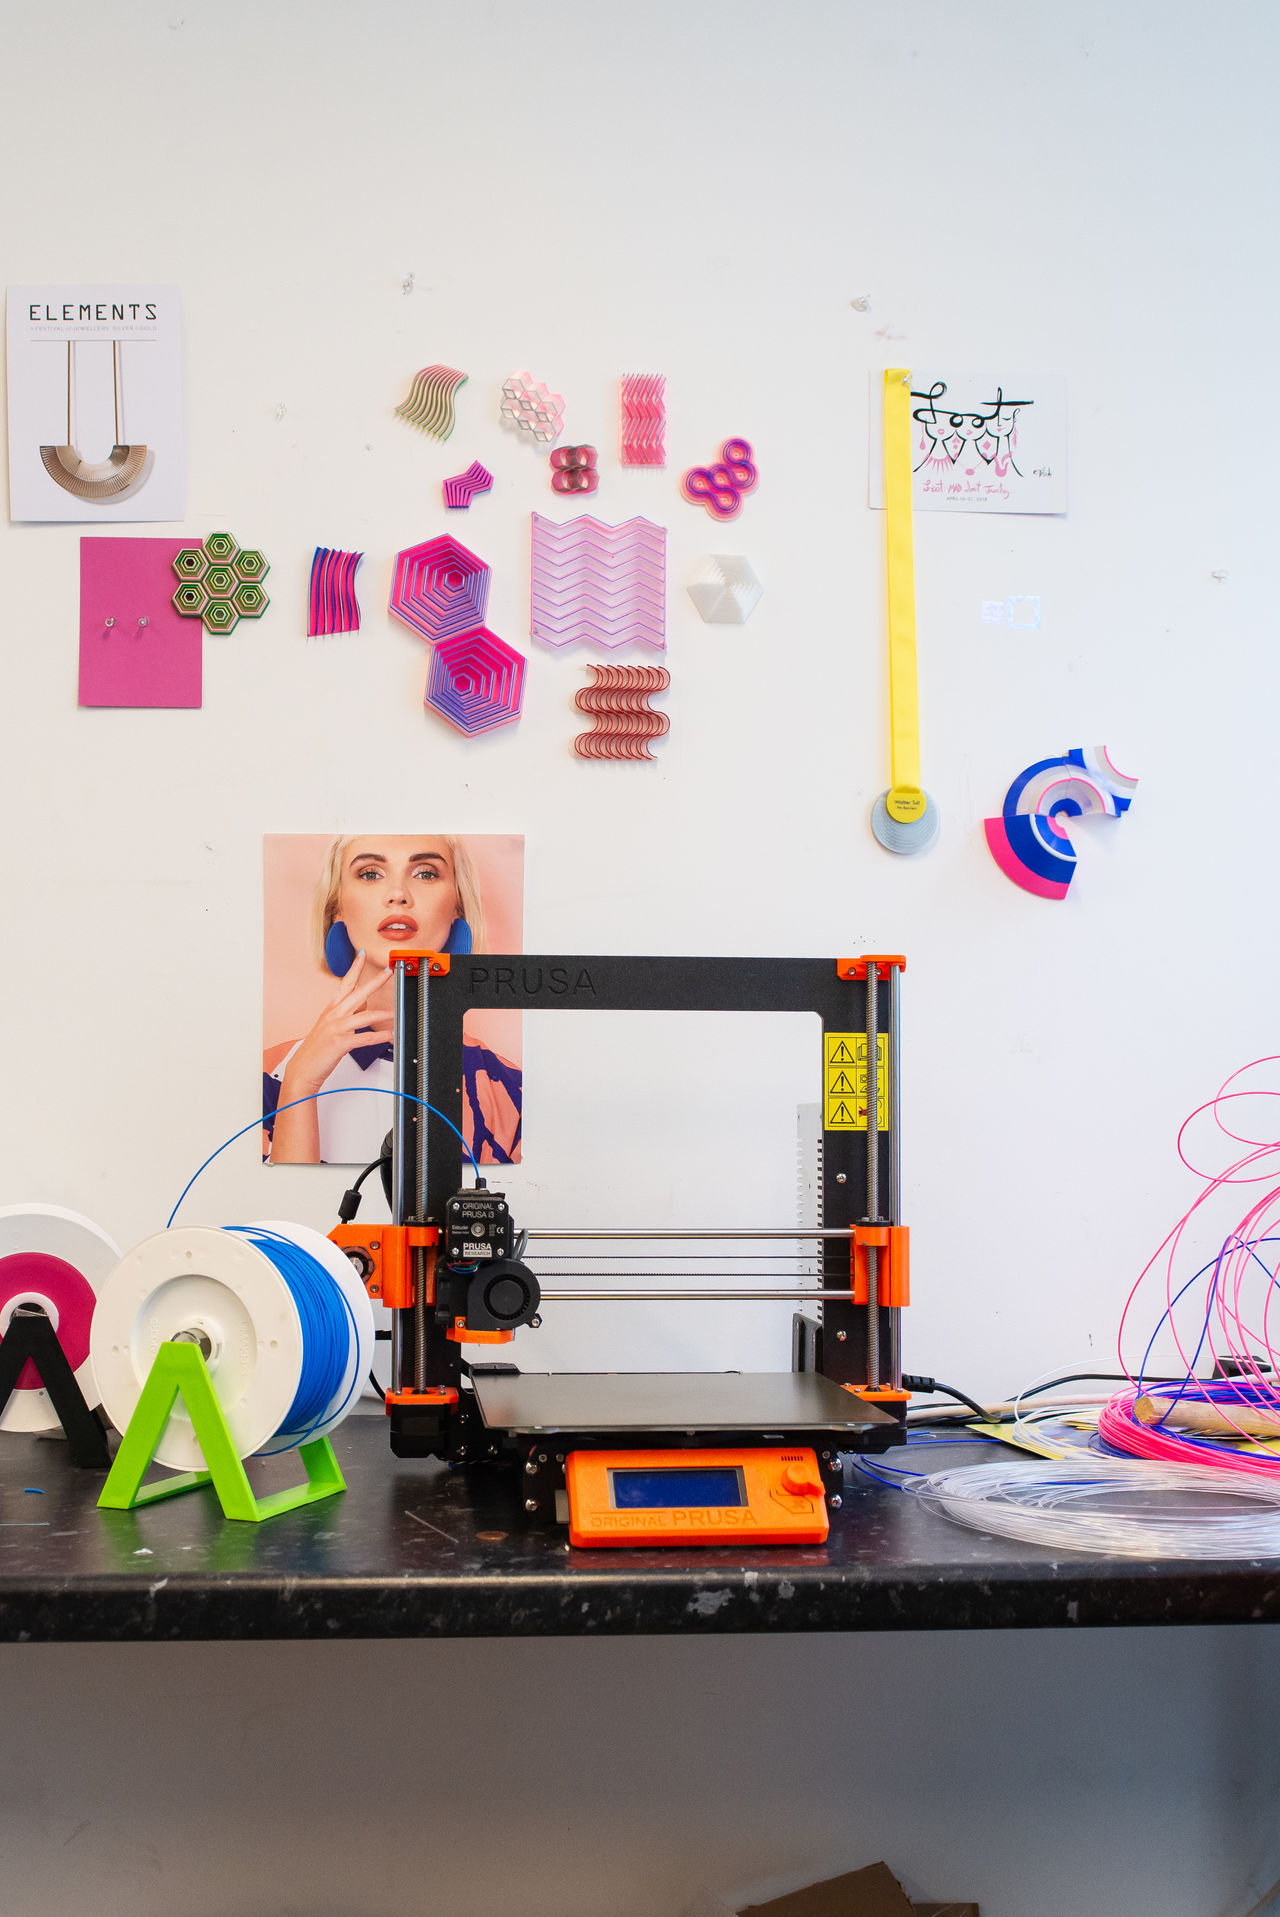 A desk on which sits an orange 3D printer. On the wall behind, posters and pieces of jewellery are hung.